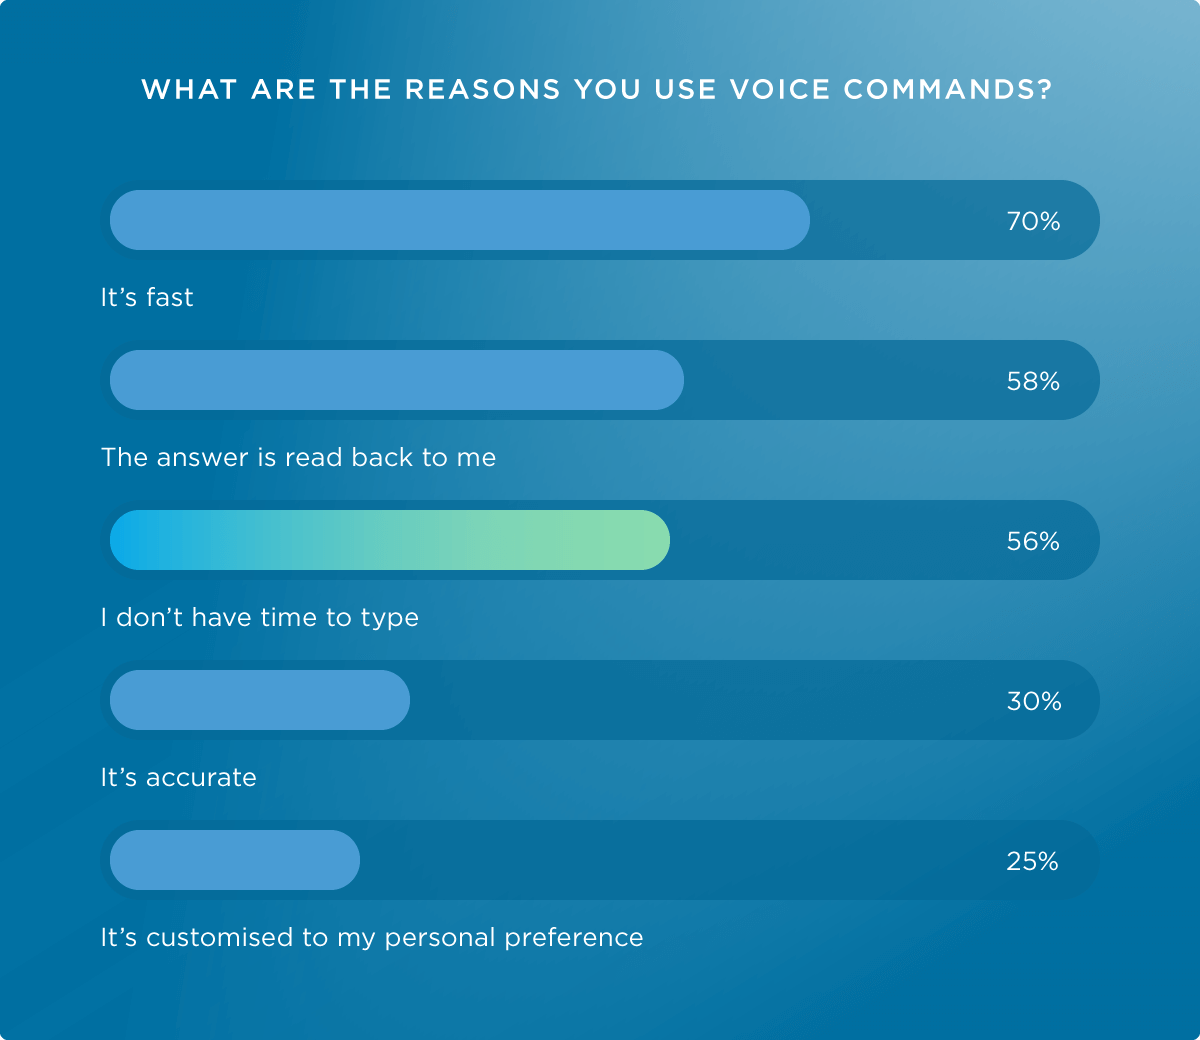 Reasons for using voice commands